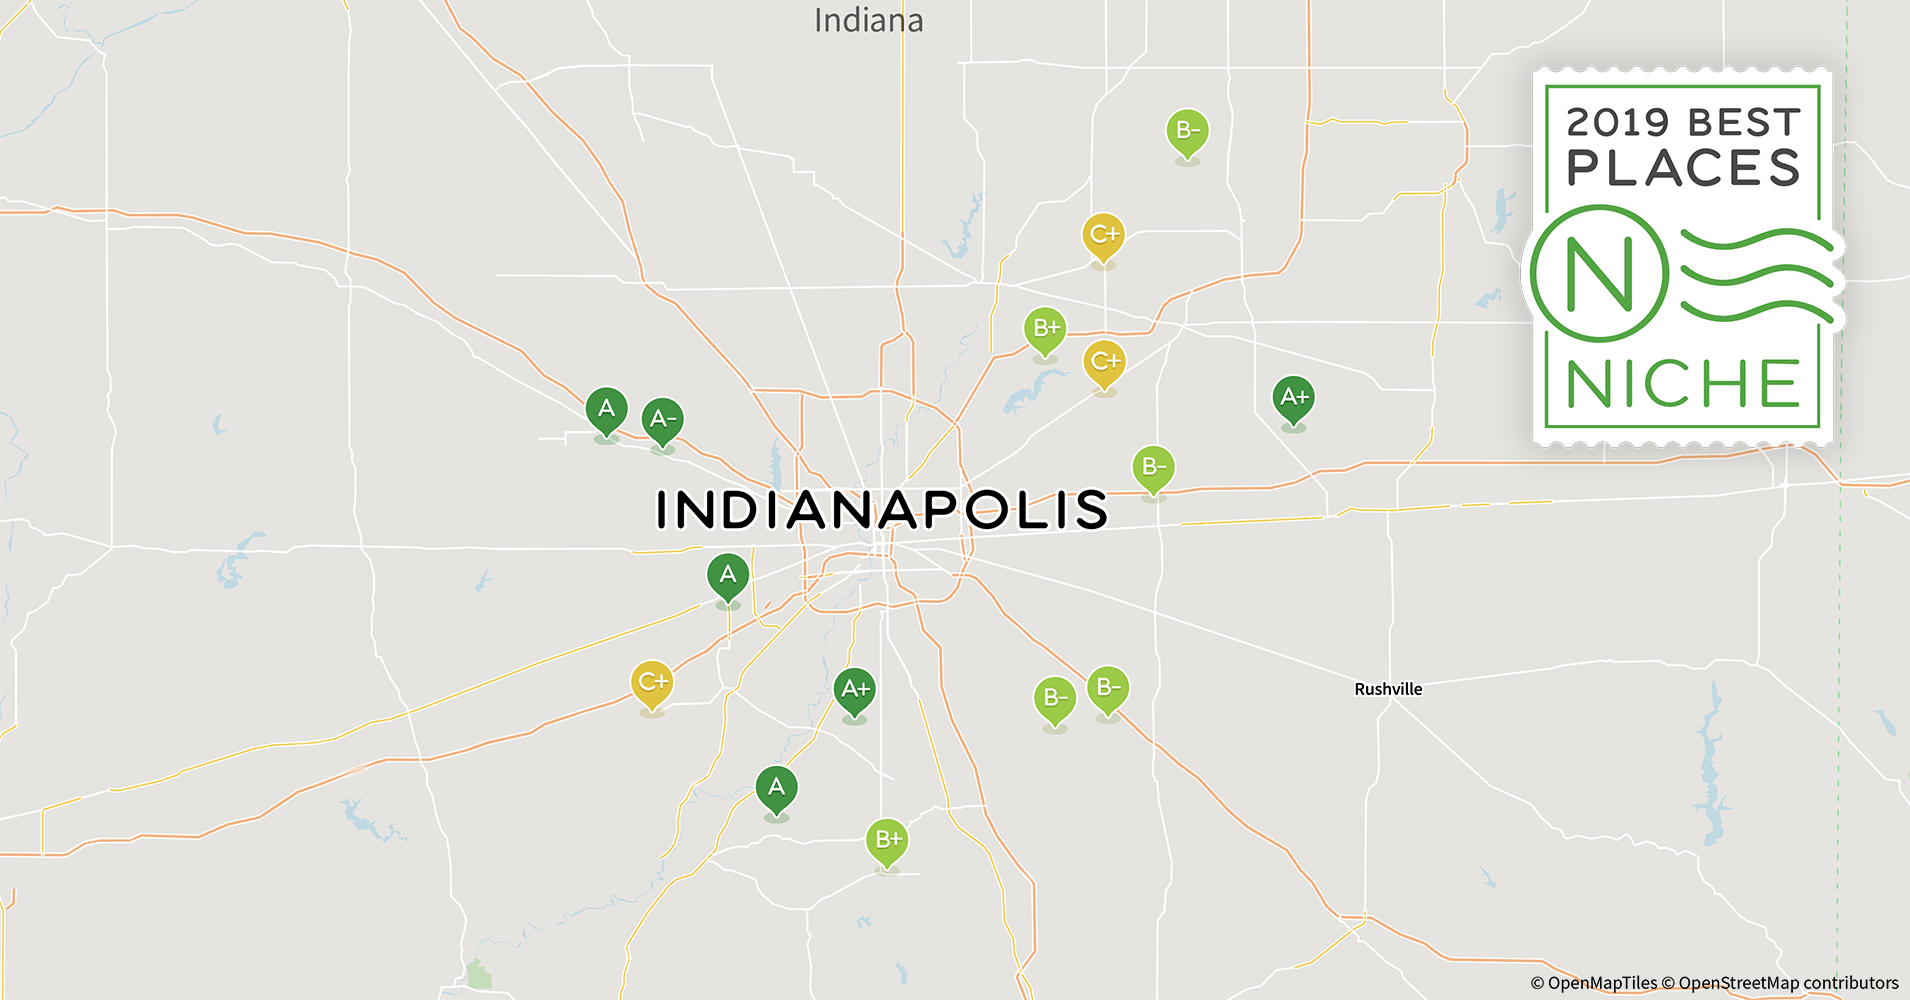 2019 Best Places to Live in the Indianapolis Area - Niche Zip Code Map Indianapolis on indianapolis maryland map, downtown indianapolis map, mishawaka zip codes map, indianapolis time zone map, indianapolis education map, indianapolis country map, indianapolis ohio map, st vincent indianapolis map, zip codes by state map, indianapolis airport map, indianapolis metropolitan area map, 2009 colorado zip codes map, minneapolis st. paul metro area county map, muncie indiana location map, indianapolis postal codes, indianapolis neighborhood map, indianapolis county map, indianapolis acres map, indianapolis township map, indianapolis indiana,